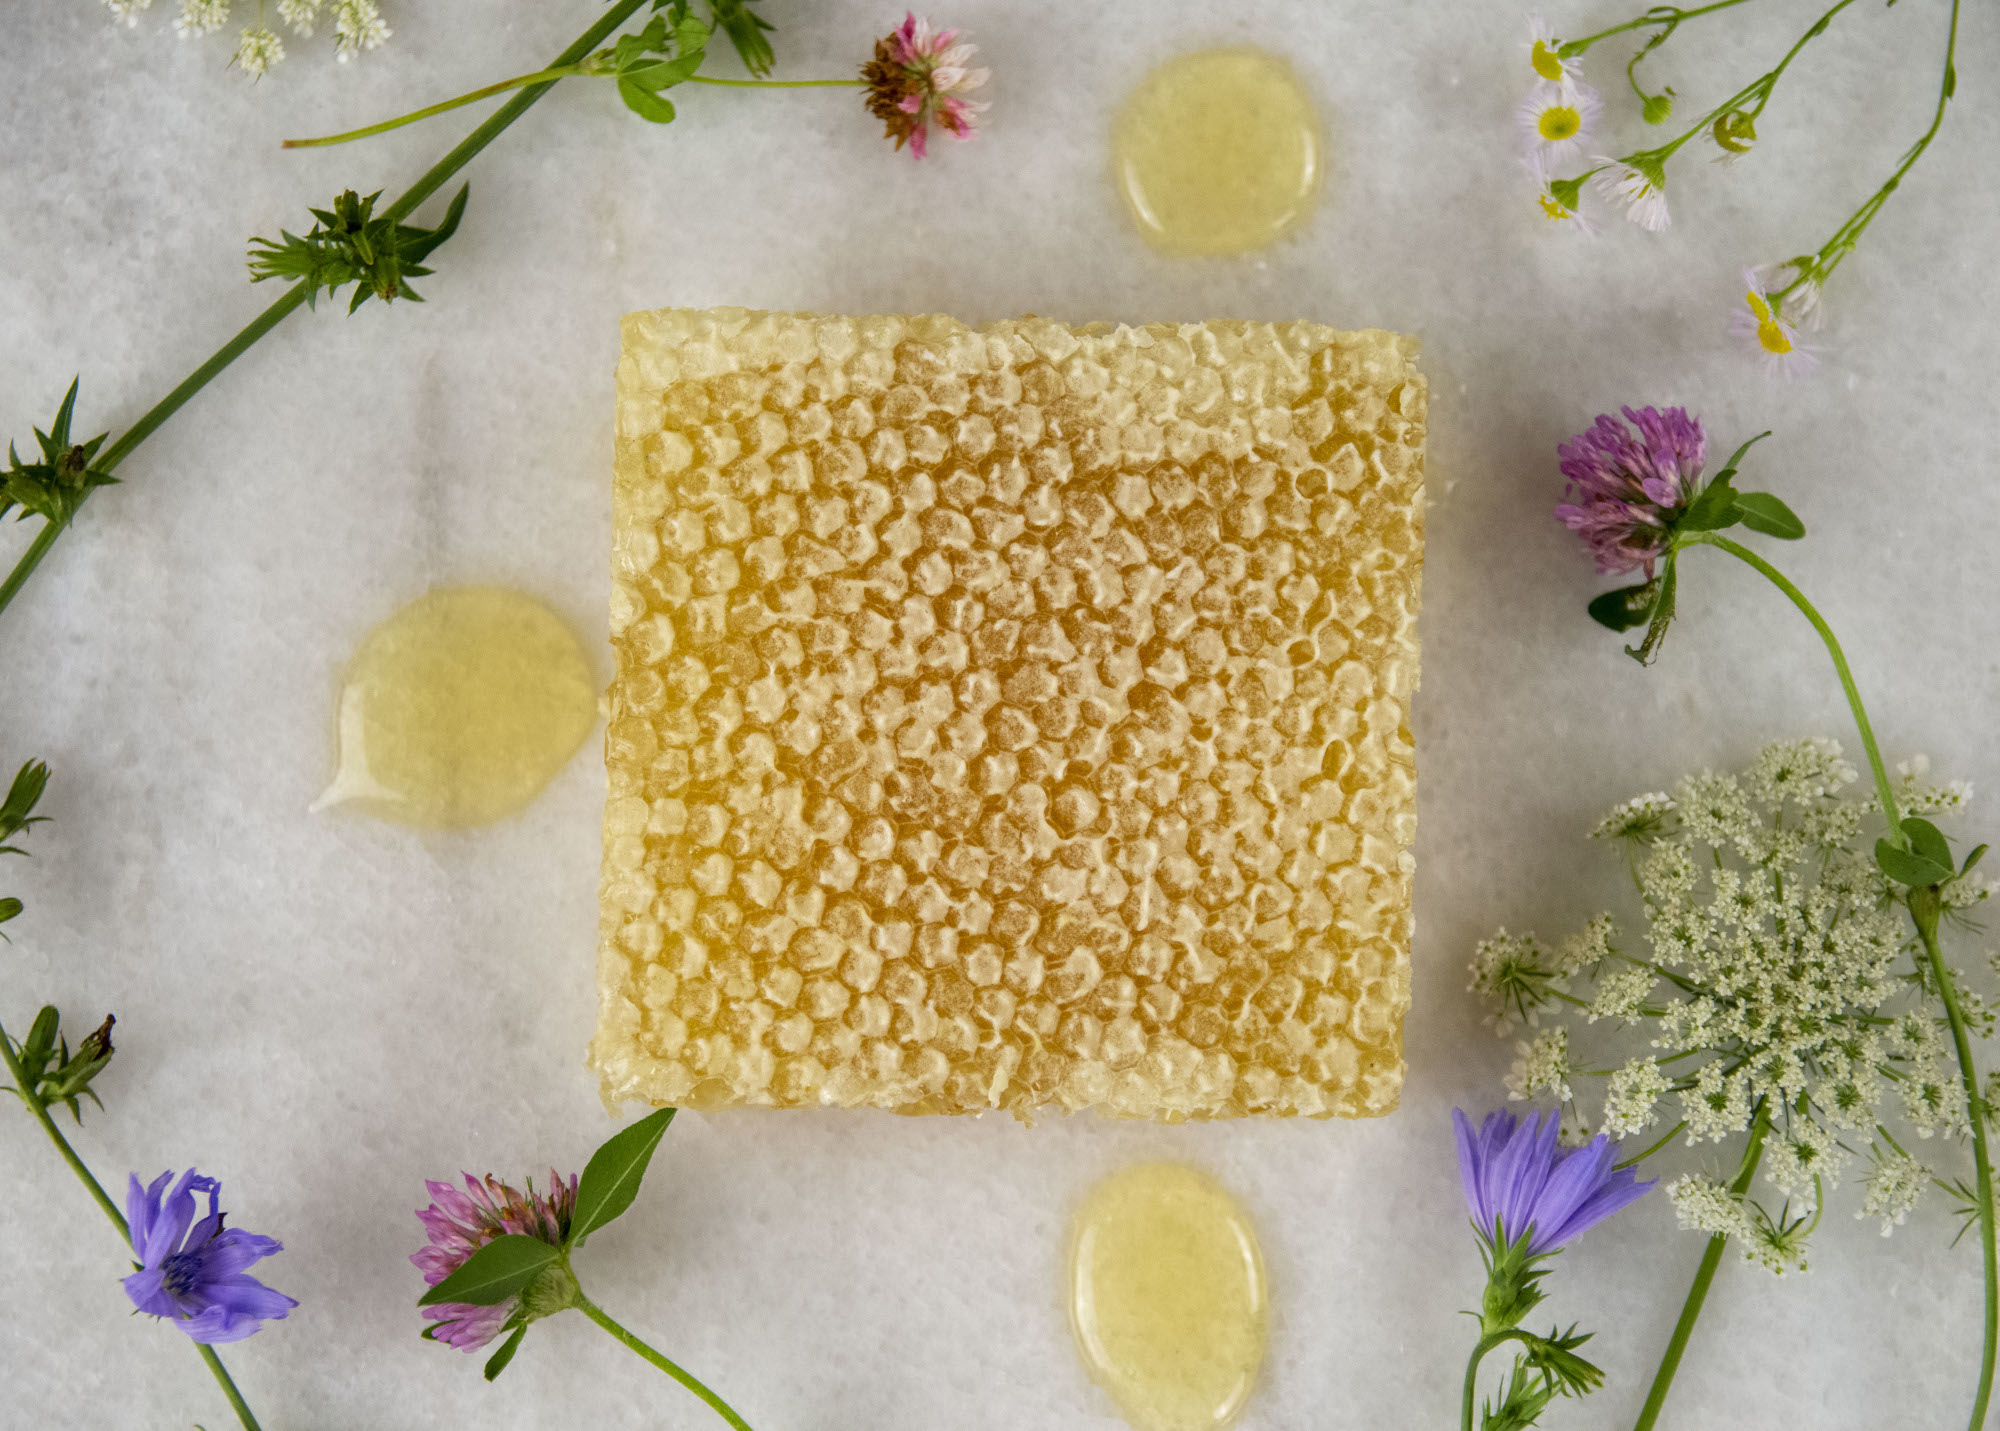 Honey Comb And Flowers